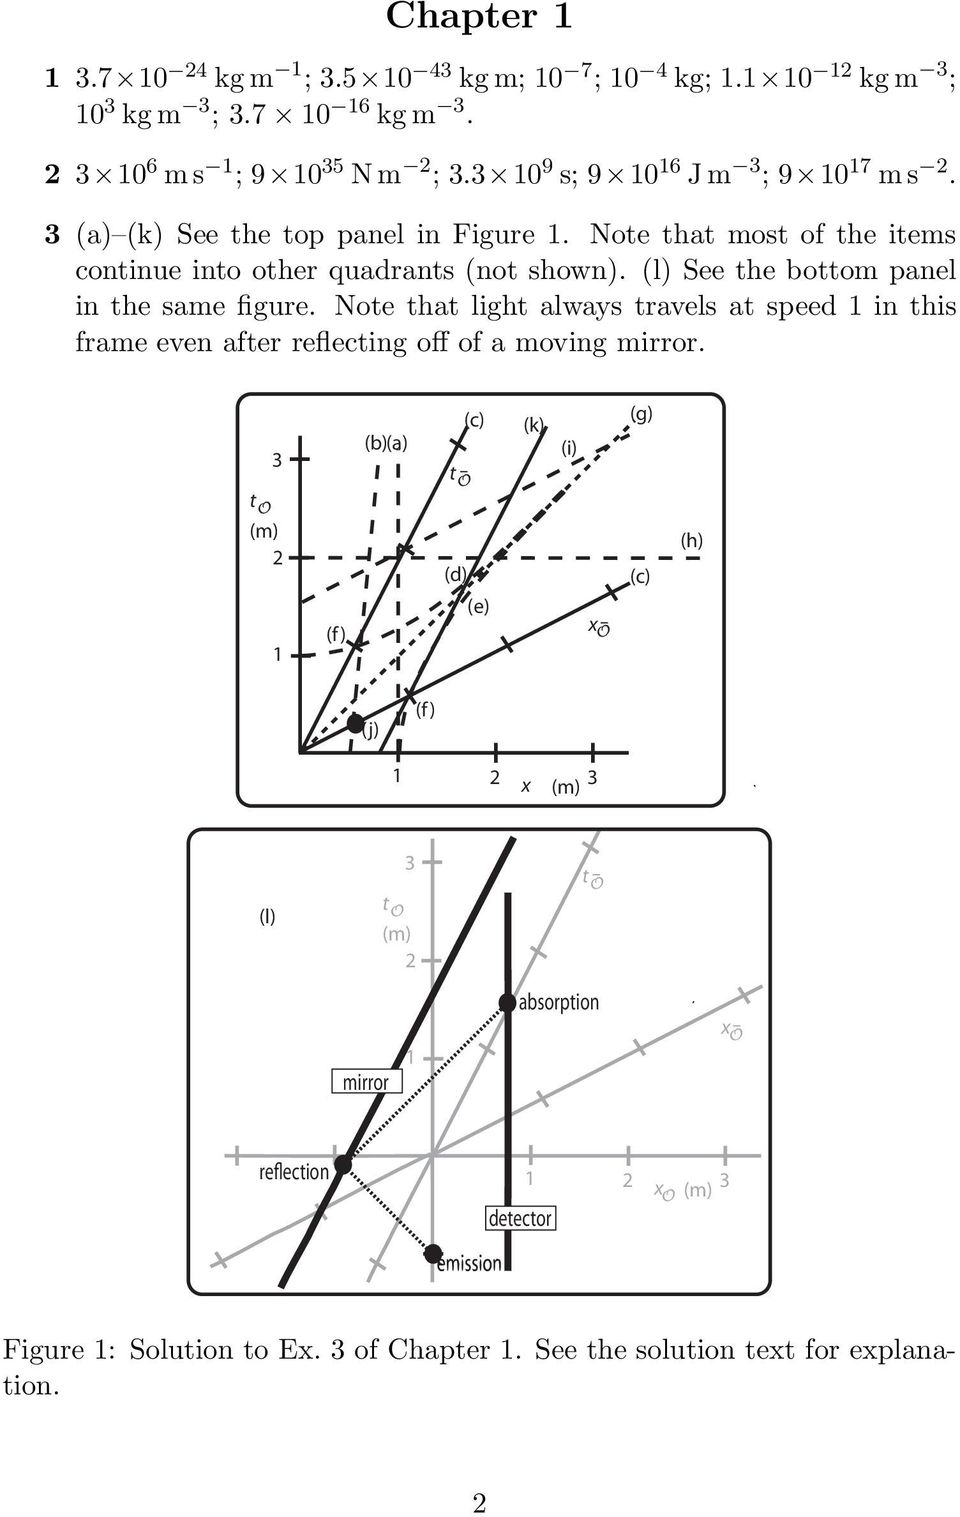 (l) See the bottom panel in the same figure. Note that light always travels at speed 1 in this frame even after reflecting off of a moving mirror.